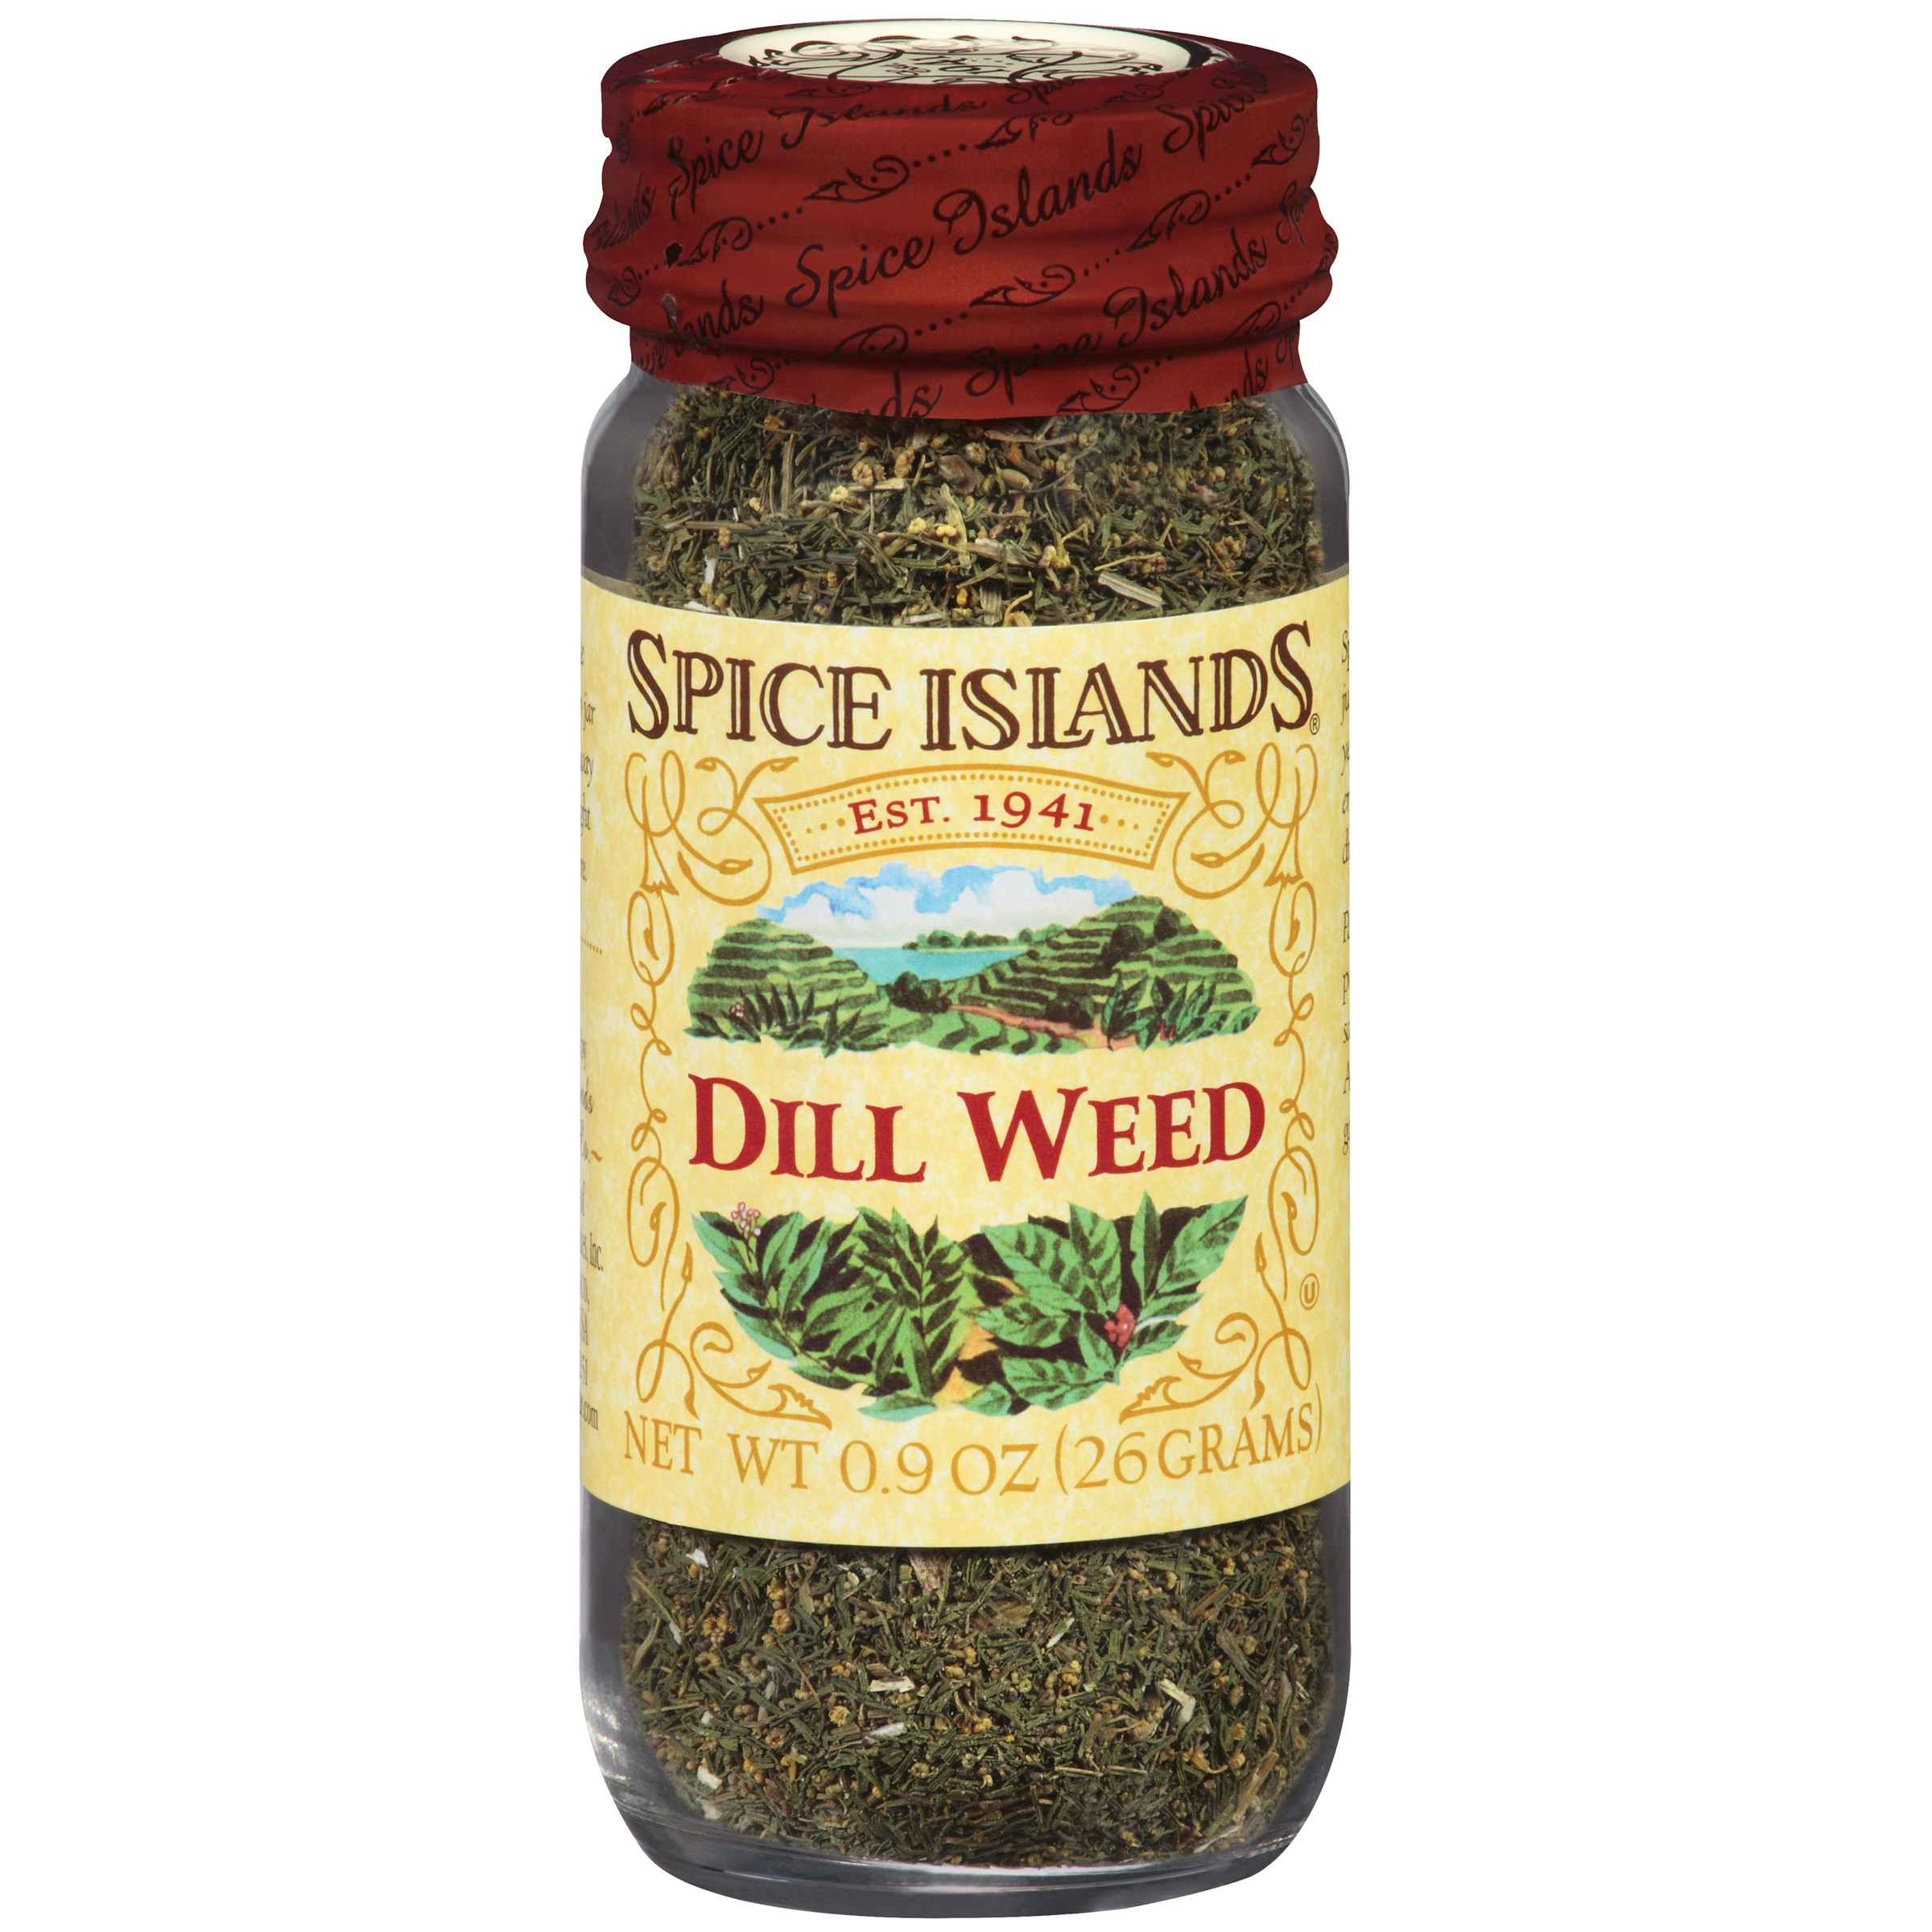 Spice Islands® Dill Weed 0.9 oz. Jar